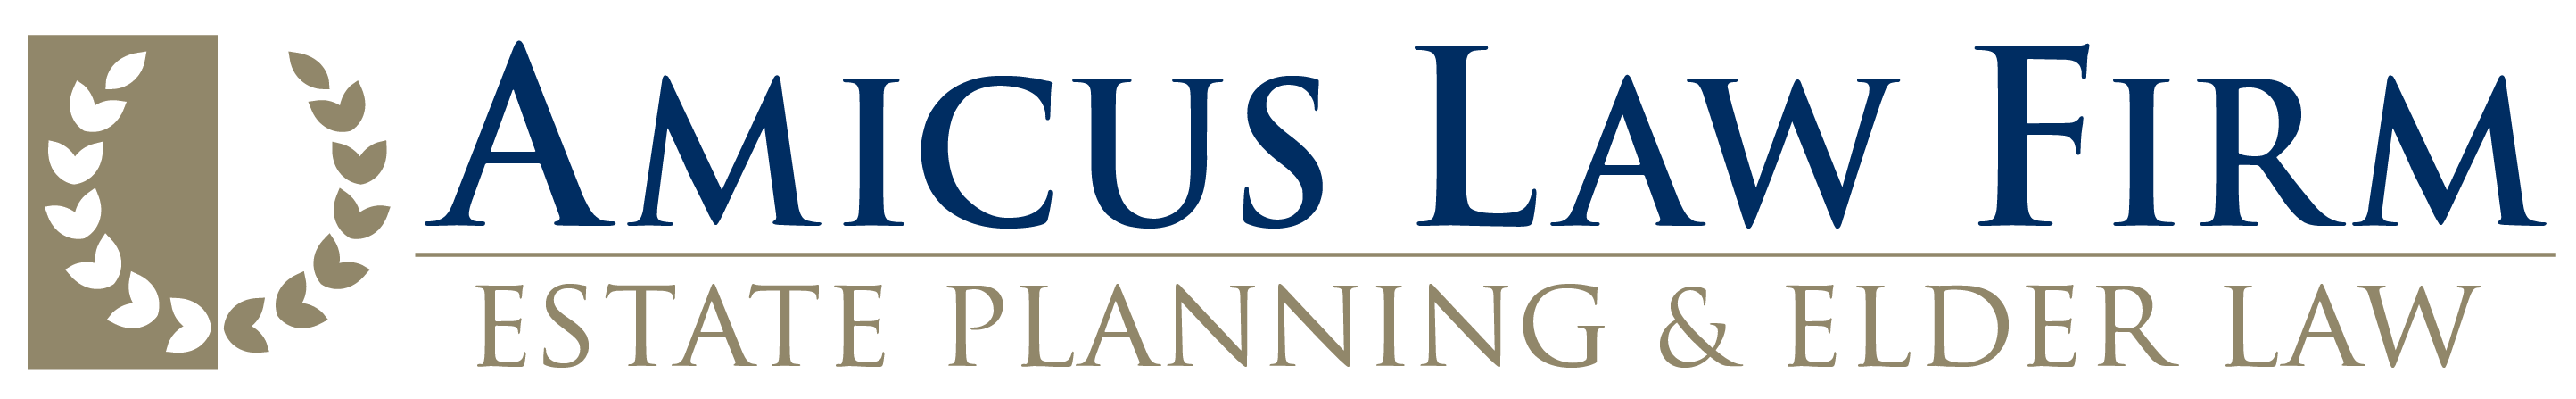 Amicus Law Firm Offers Estate Planning Services in Centerville, UT